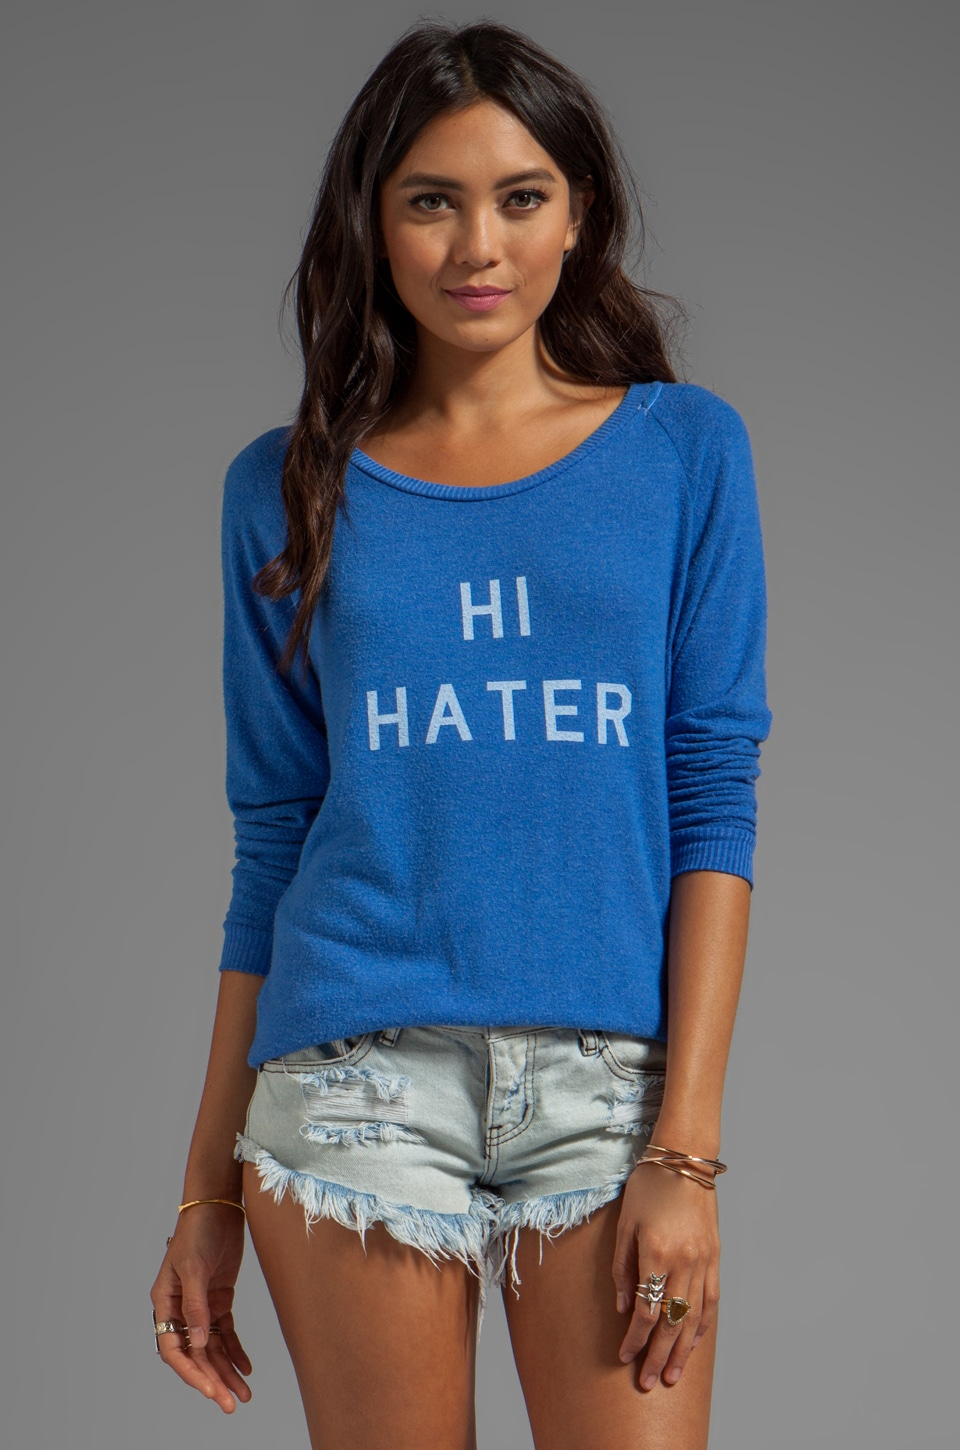 Local Celebrity Hi Hater Bye Hater Sweater in Royal Stone